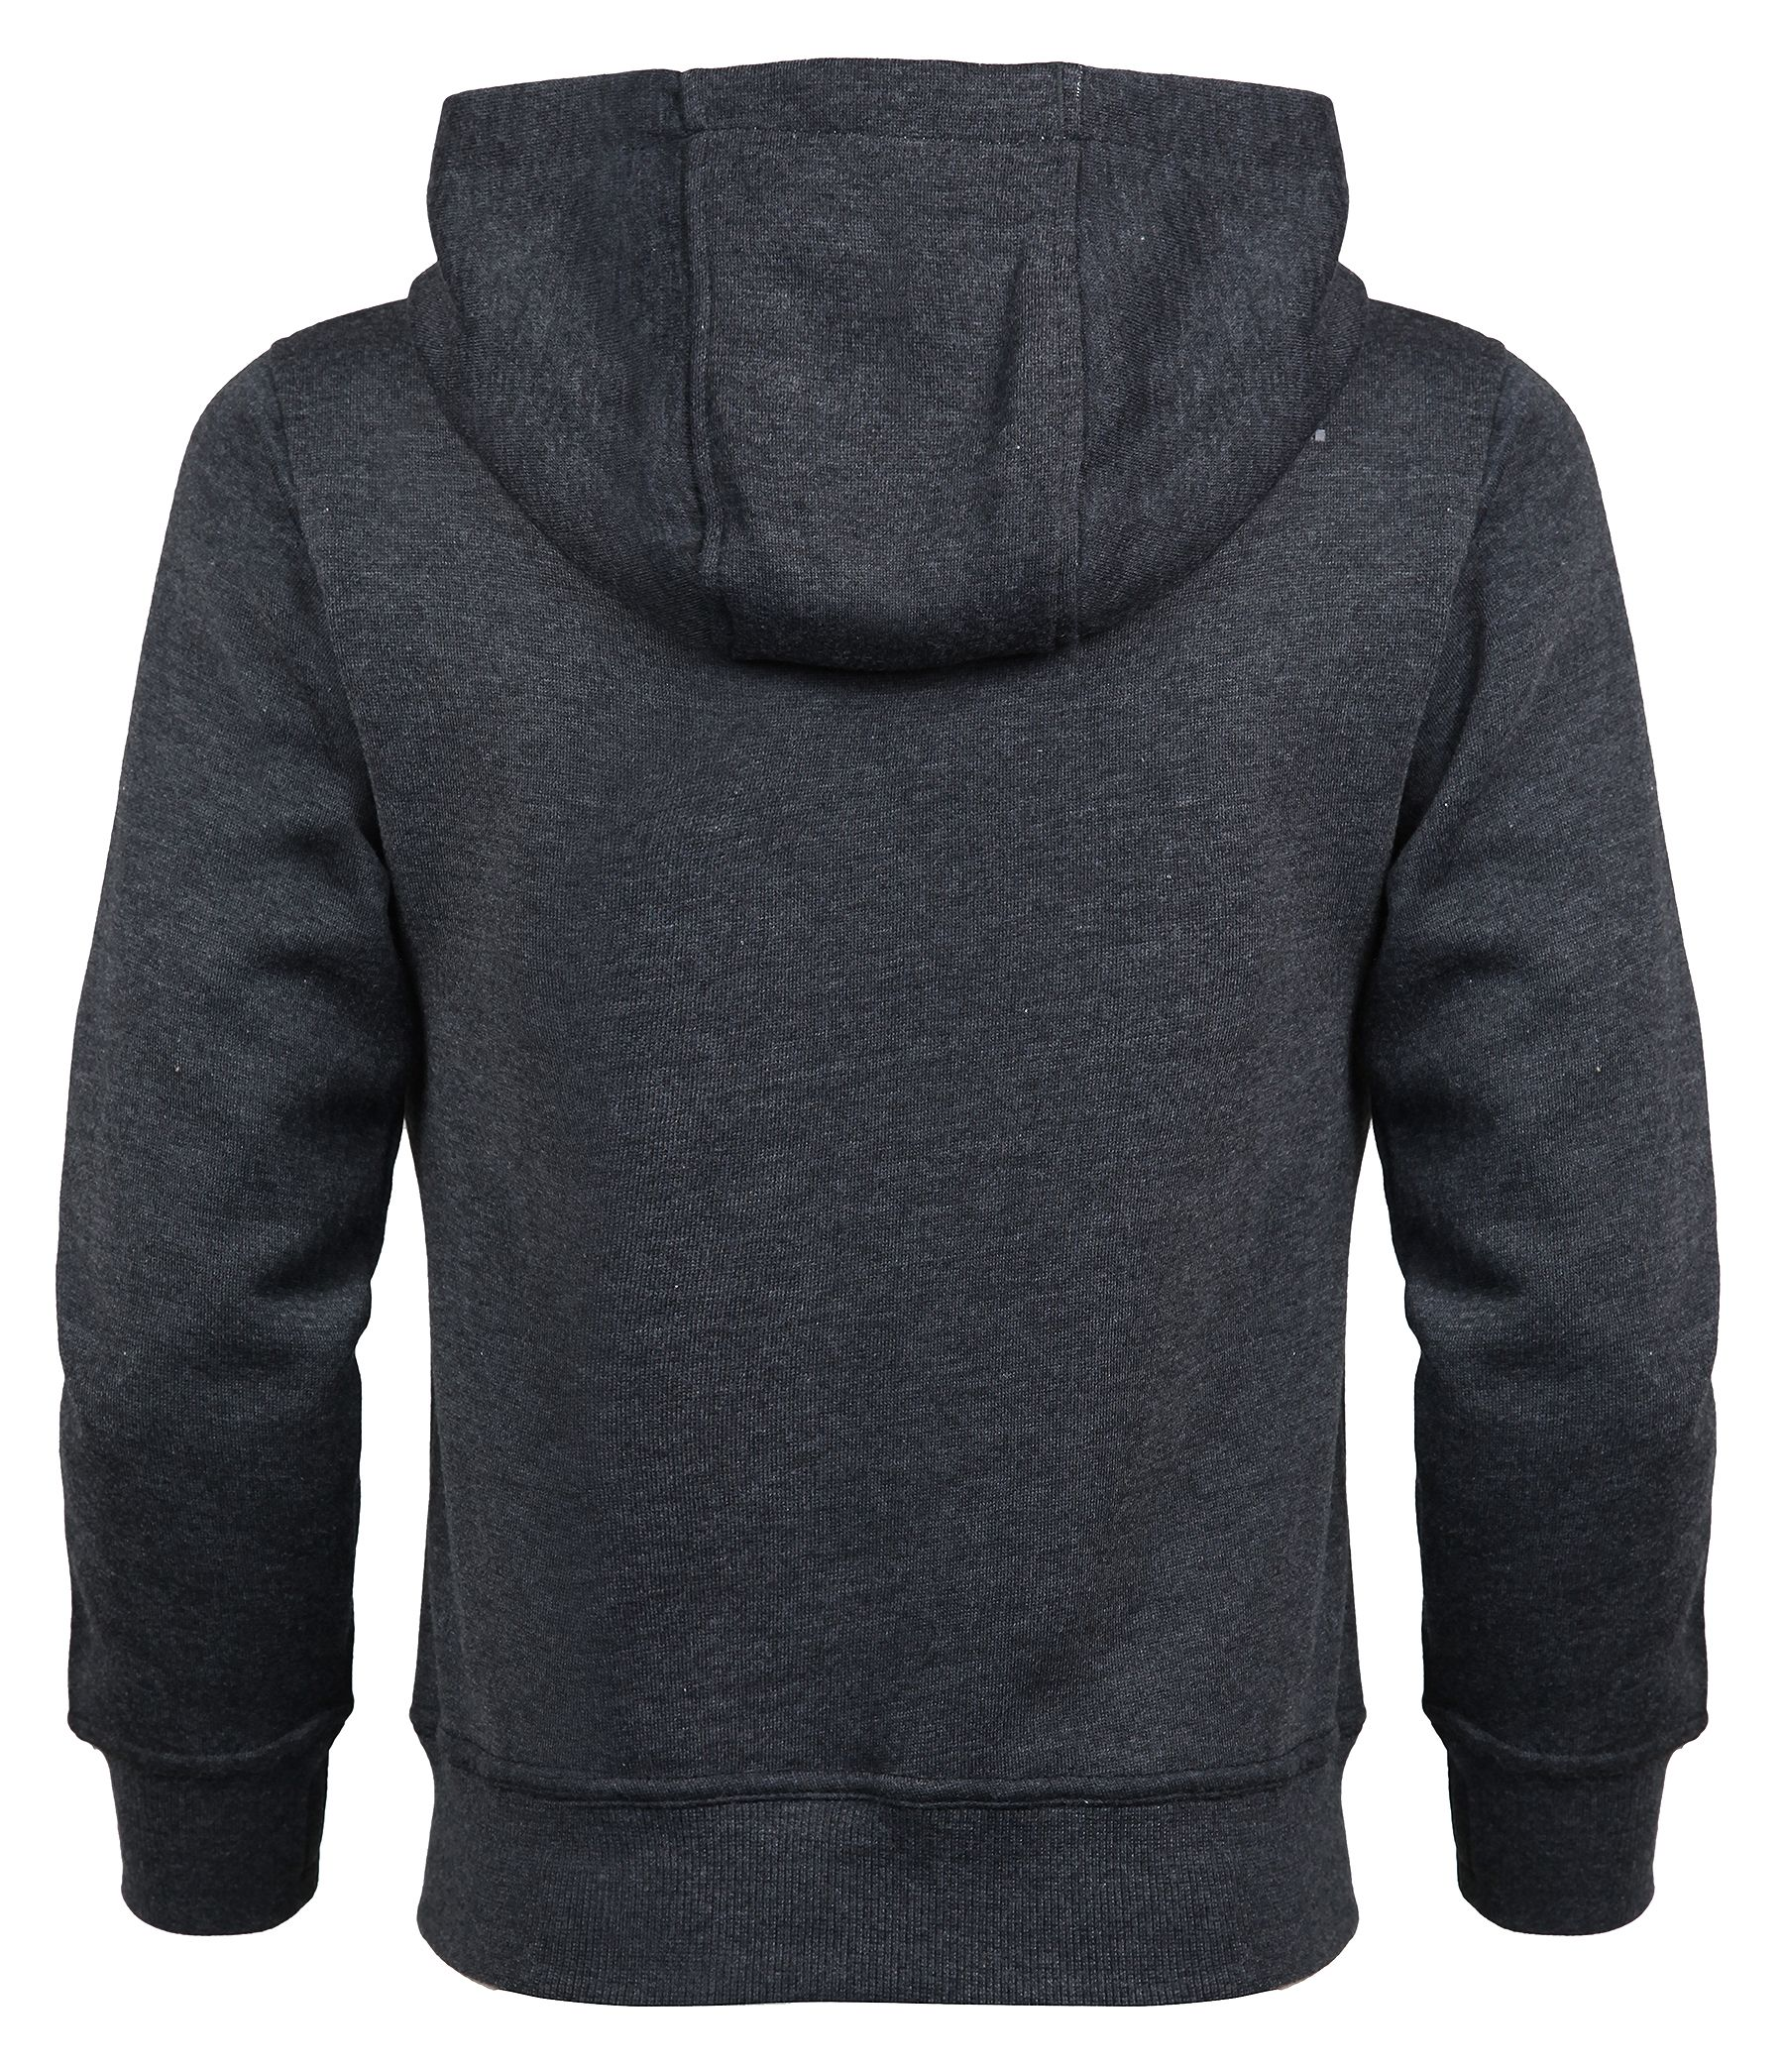 Boys birbank hooded sweatshirt